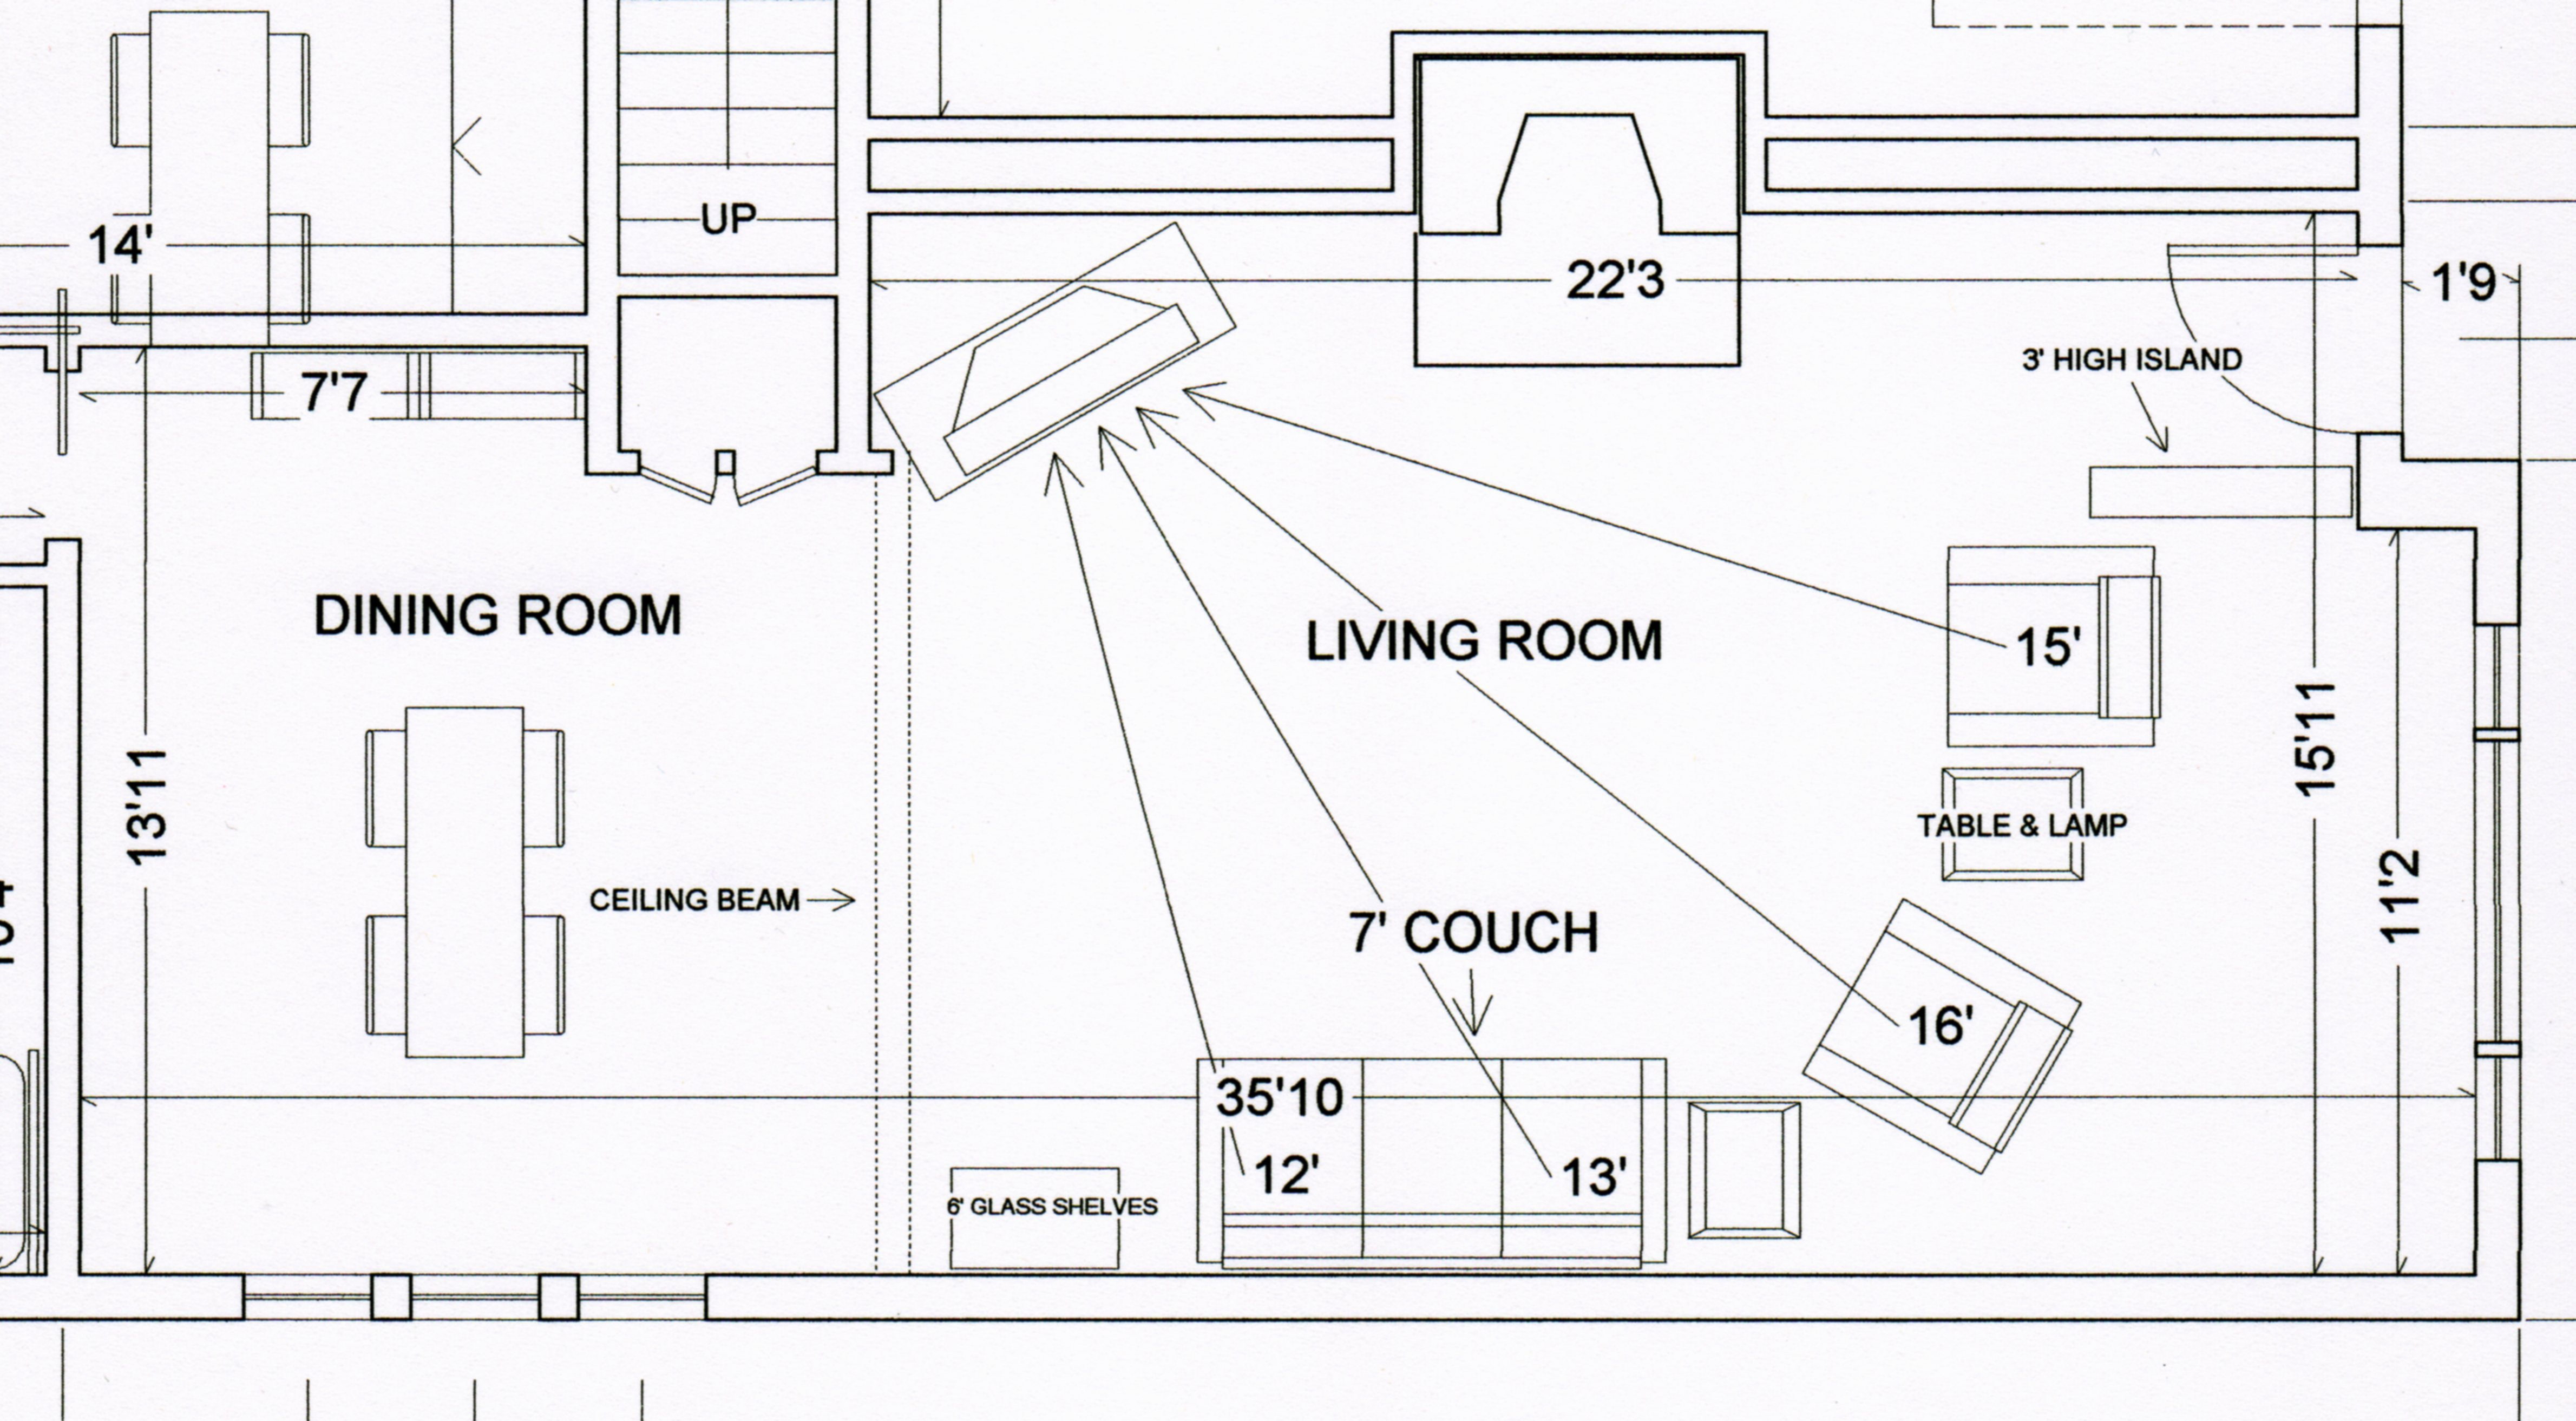 Speaker Setup Where To Put Them Avs Forum Home Theater Surround Sound Placement Ceiling On 5 1 Diagram Looking For Help Setting Up My Speakersmy Living Room Is 24 X 165 With 8 Ceilings If You Look At The Photo There Also An Open Area Dining